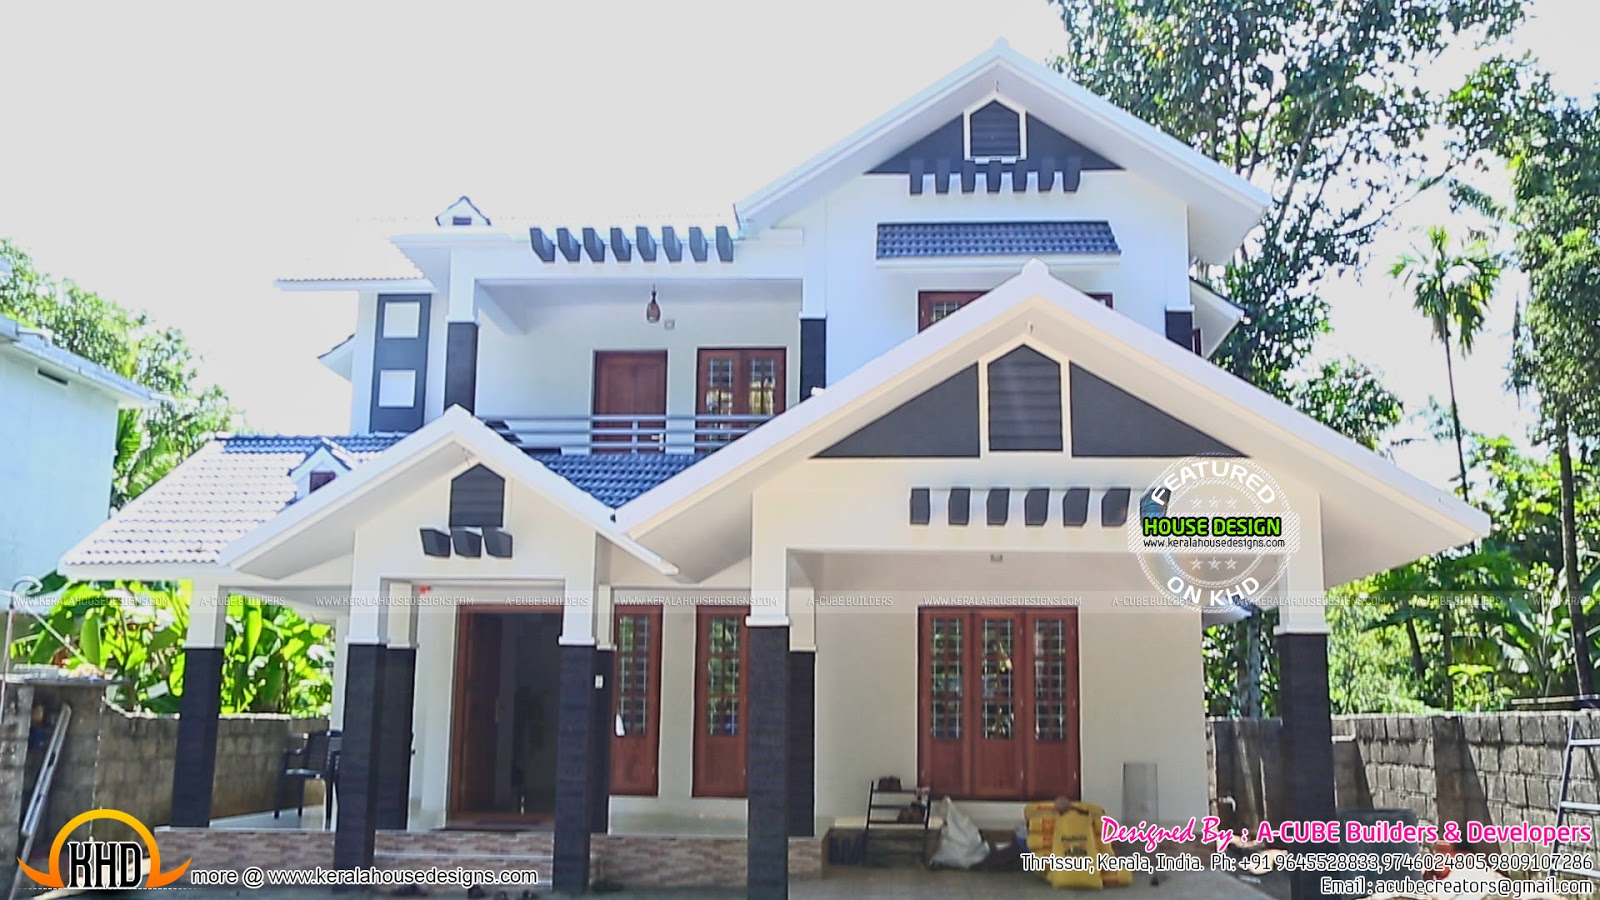 New house plans for 2016 starts here kerala home design for Www homedesign com